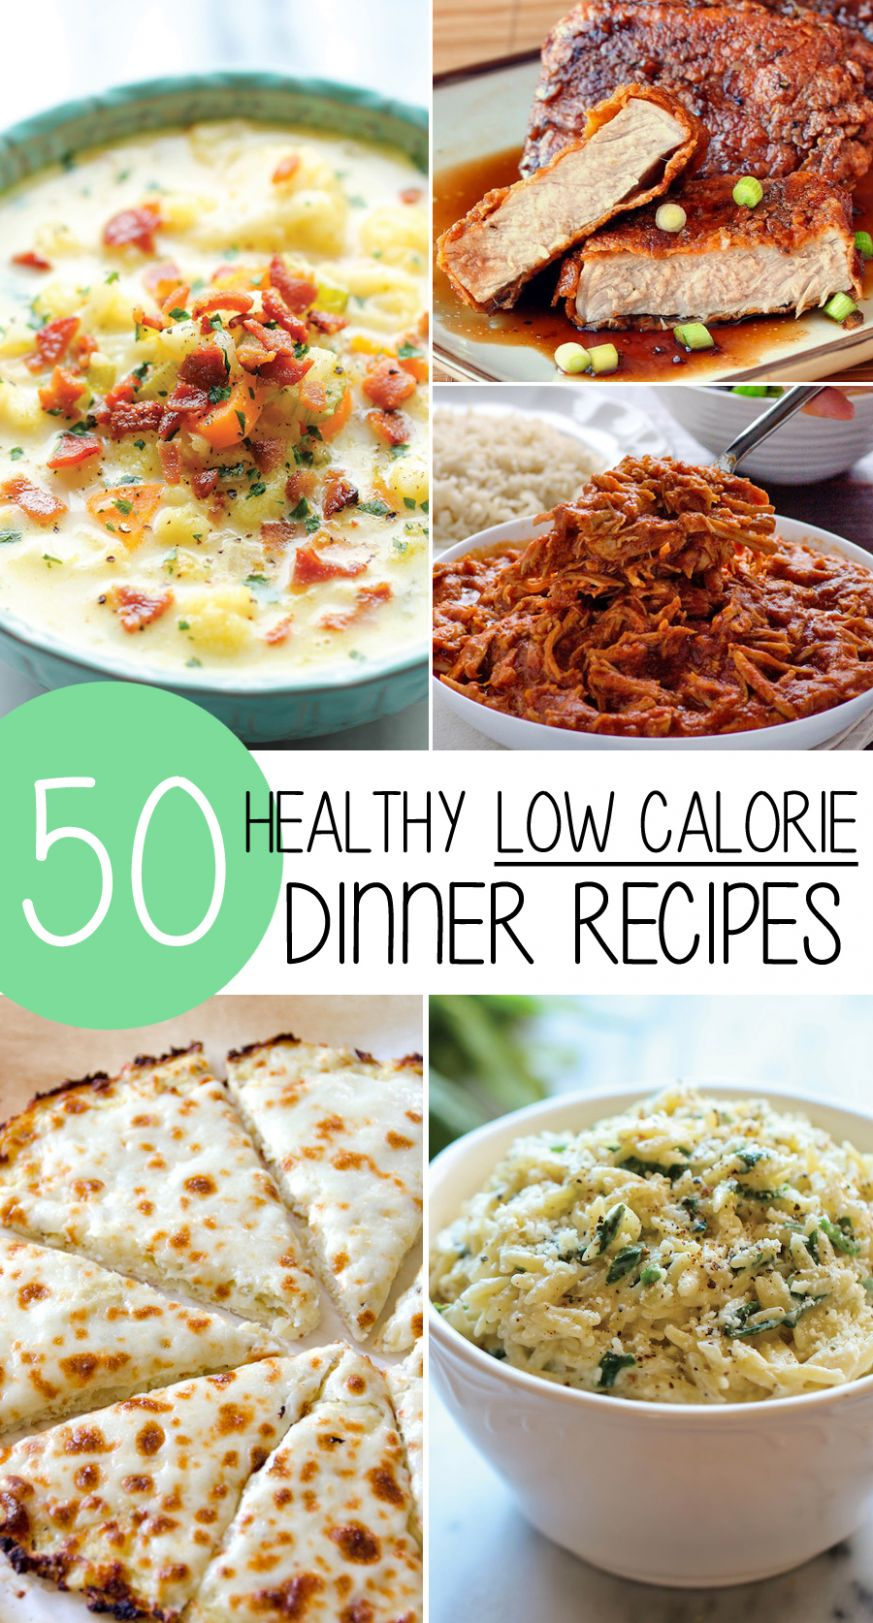 9 Healthy Low Calorie Weight Loss Dinner Recipes! – TrimmedandToned